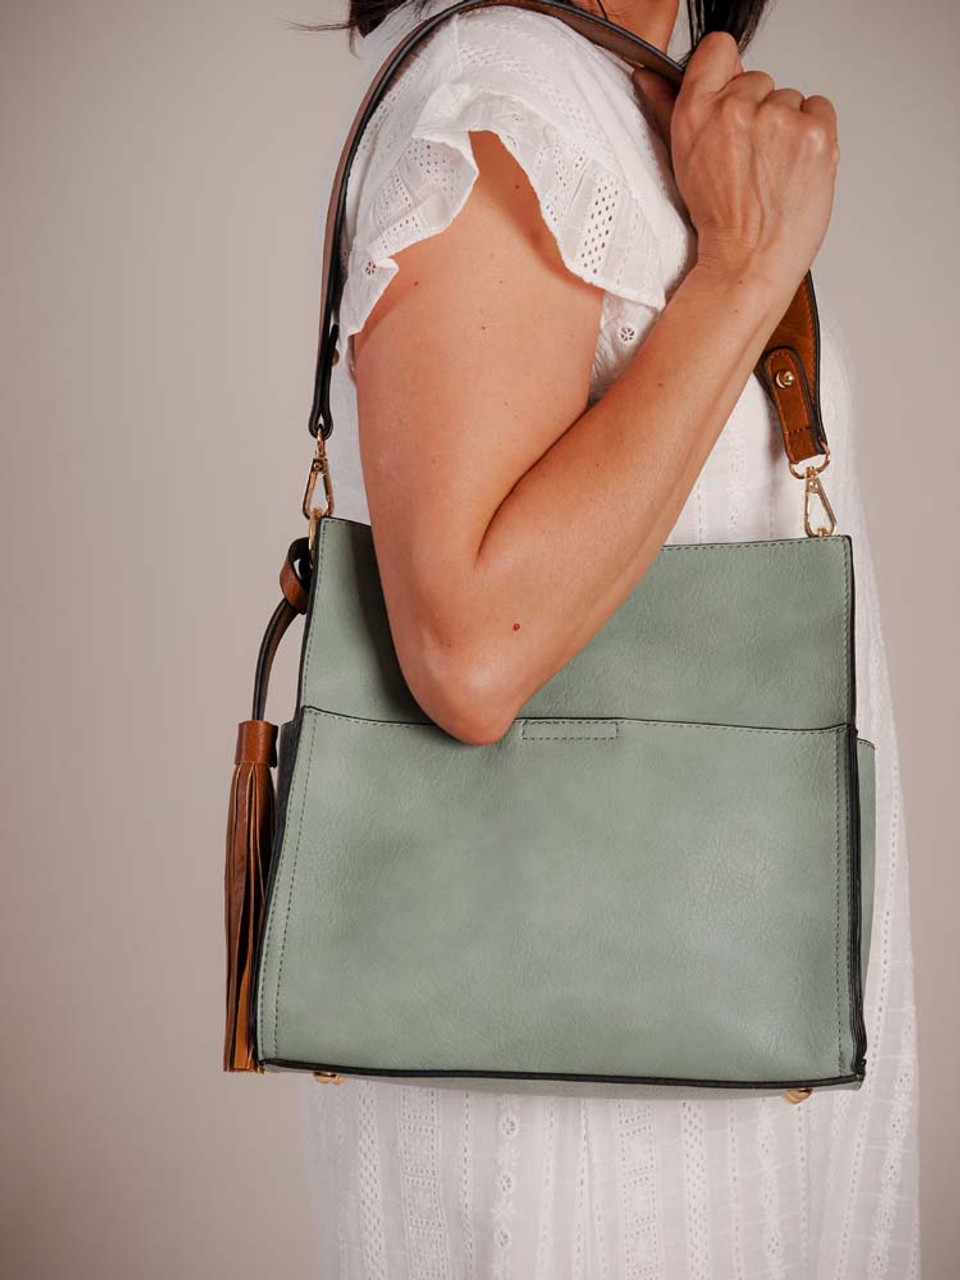 Lyla is a 2-in-1 style! Tote features a detachable guitar strap handle, decorative tassel, front slip pocket with magnet snap, slip pockets on the sides, and magnet snap close on top. Leave the matching colored small zipper-close bag inside for additional pockets including a zip pocket and two slip pockets!